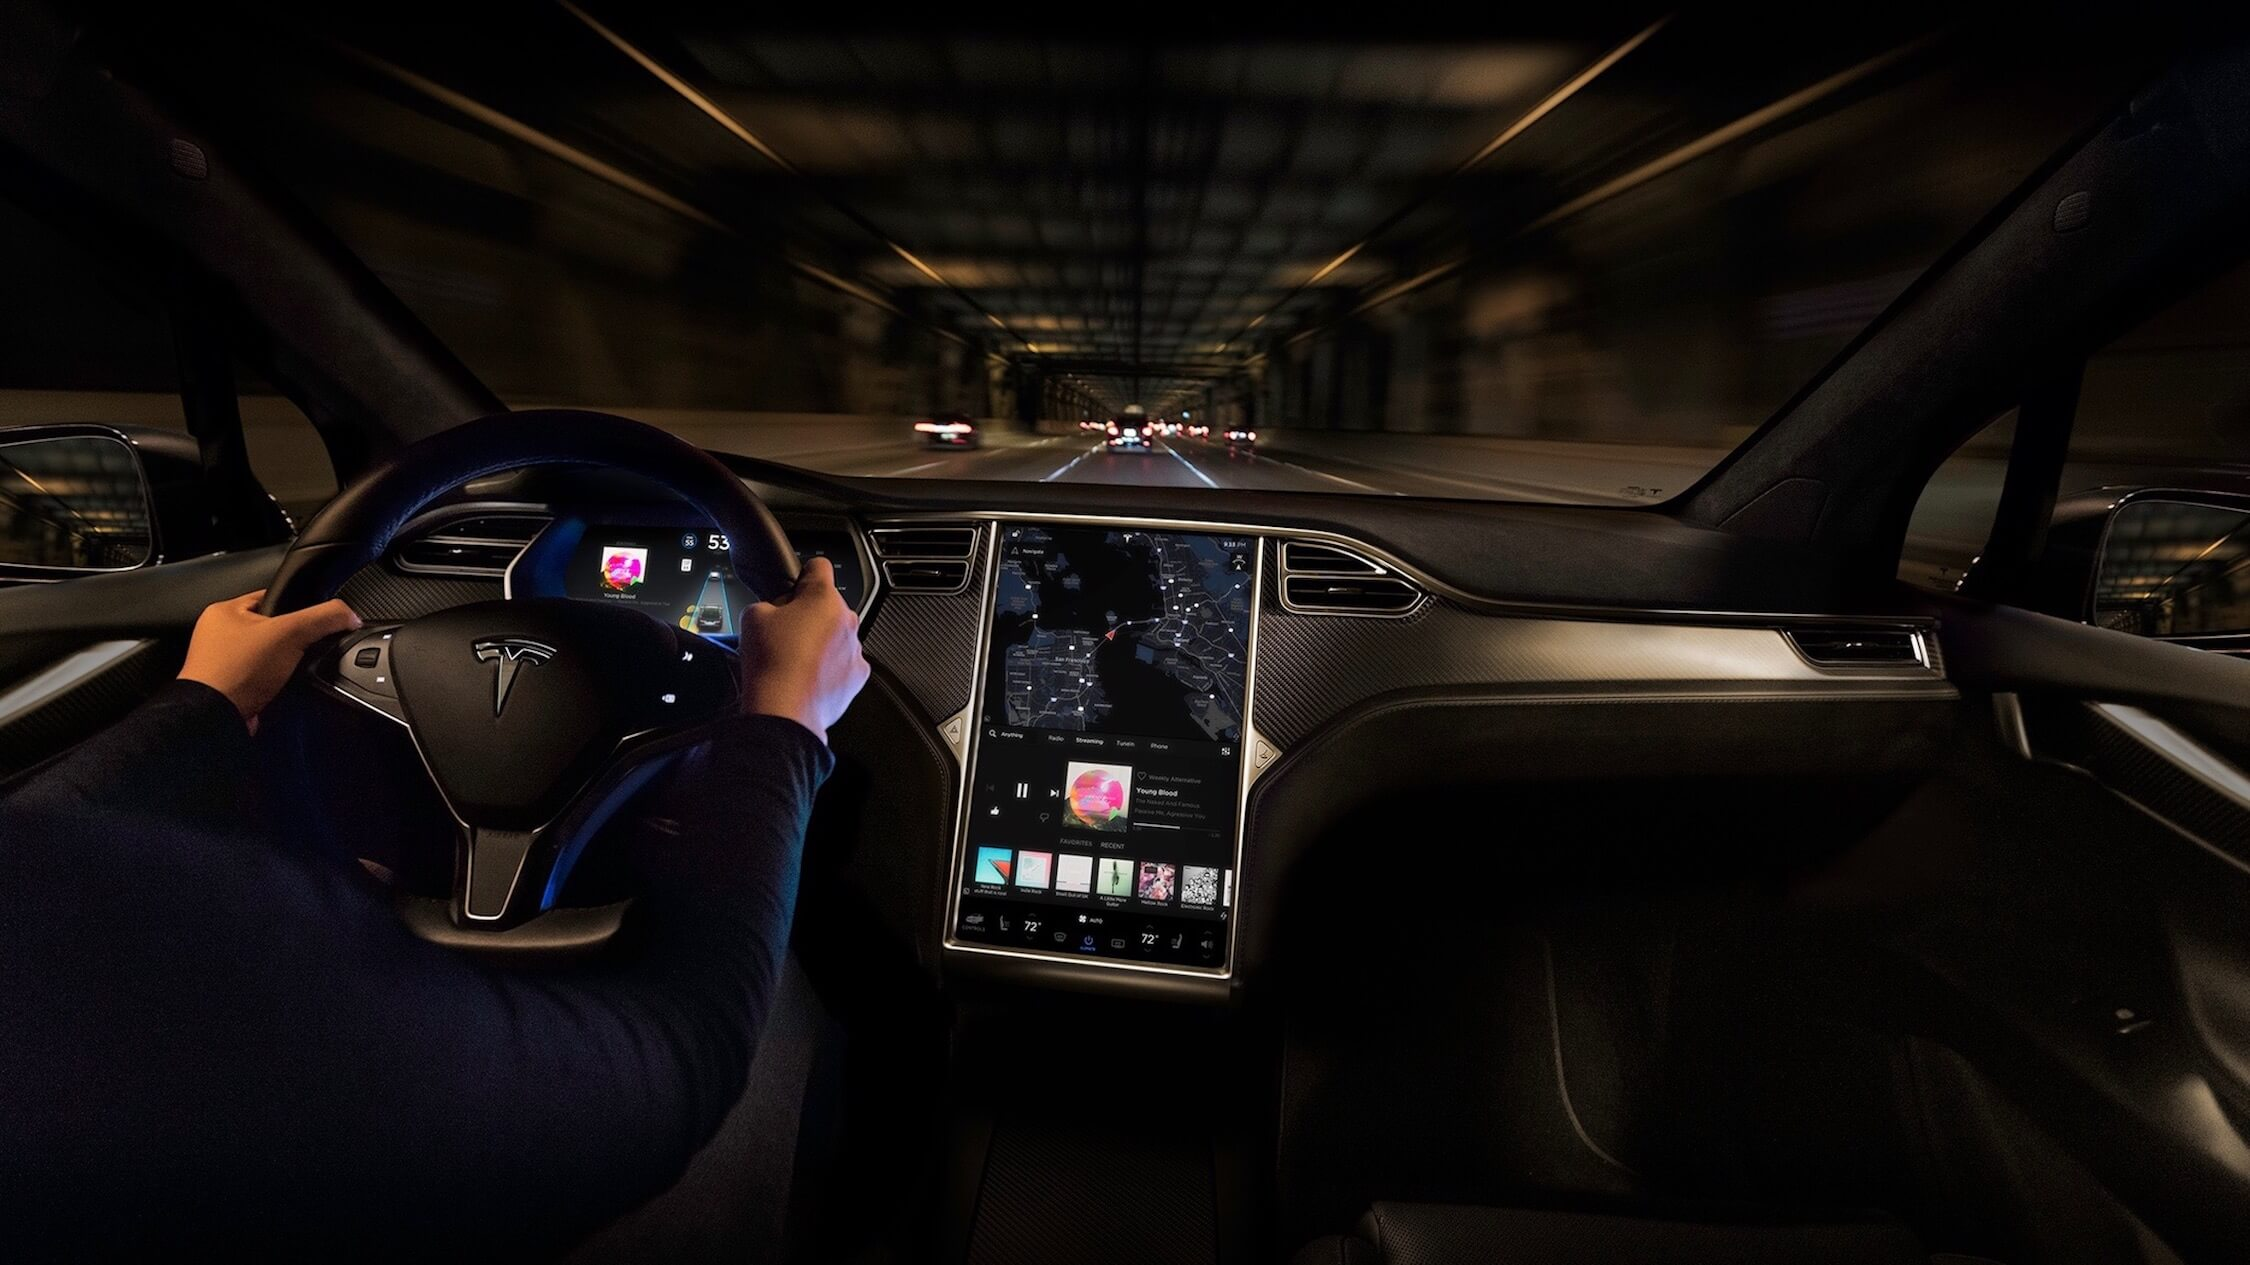 Tesla Model X interieur